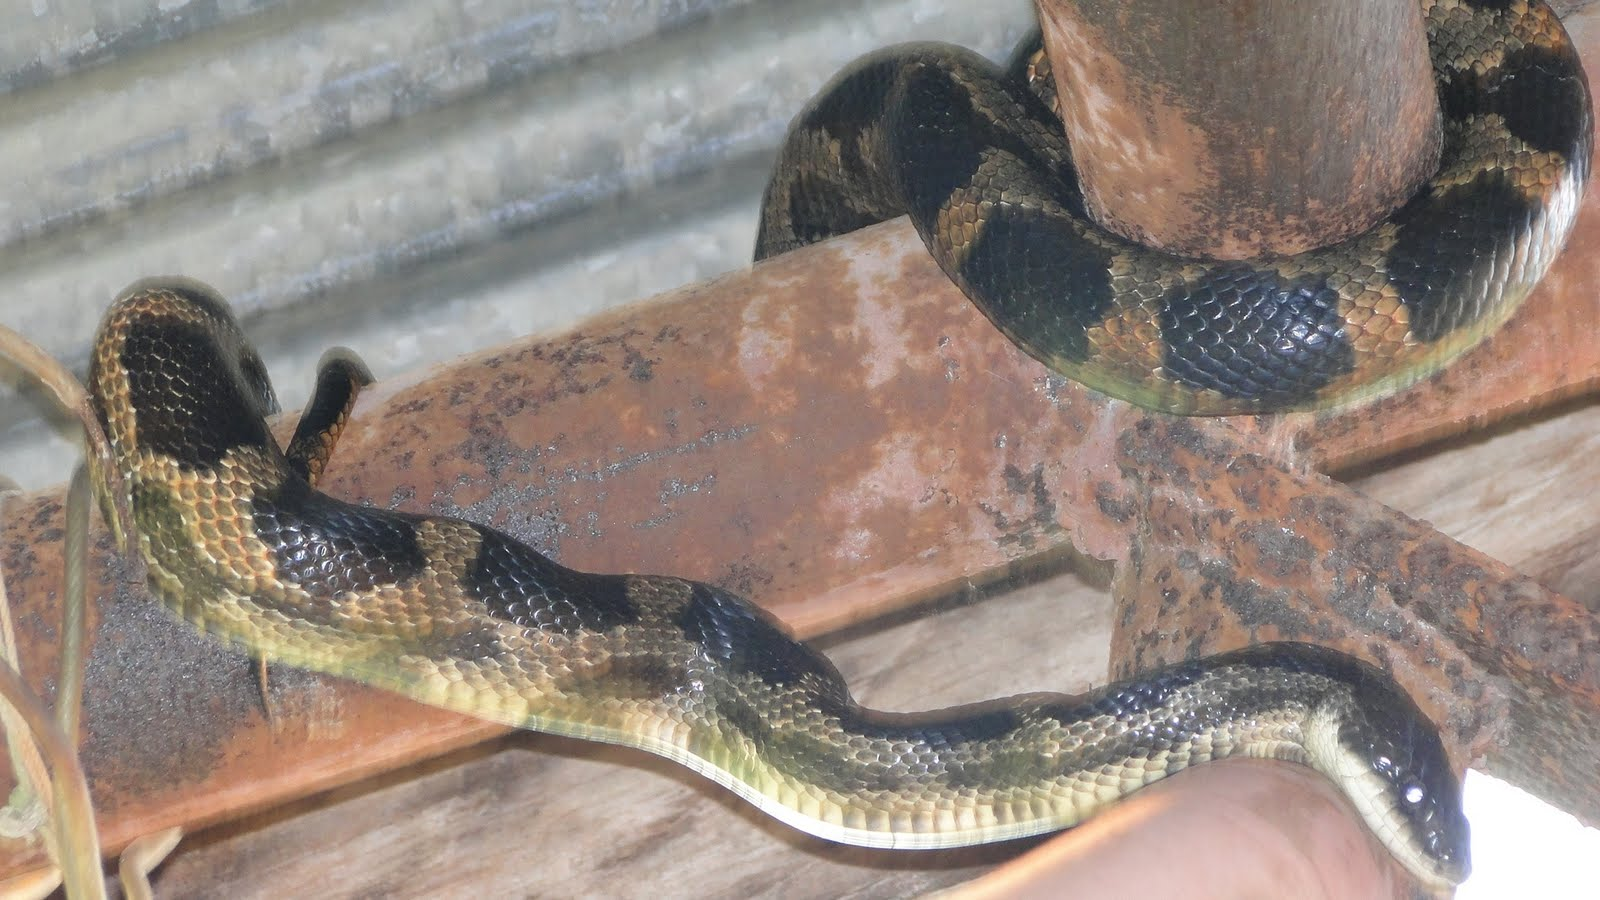 Snake Pictures in Louisiana | HubPages